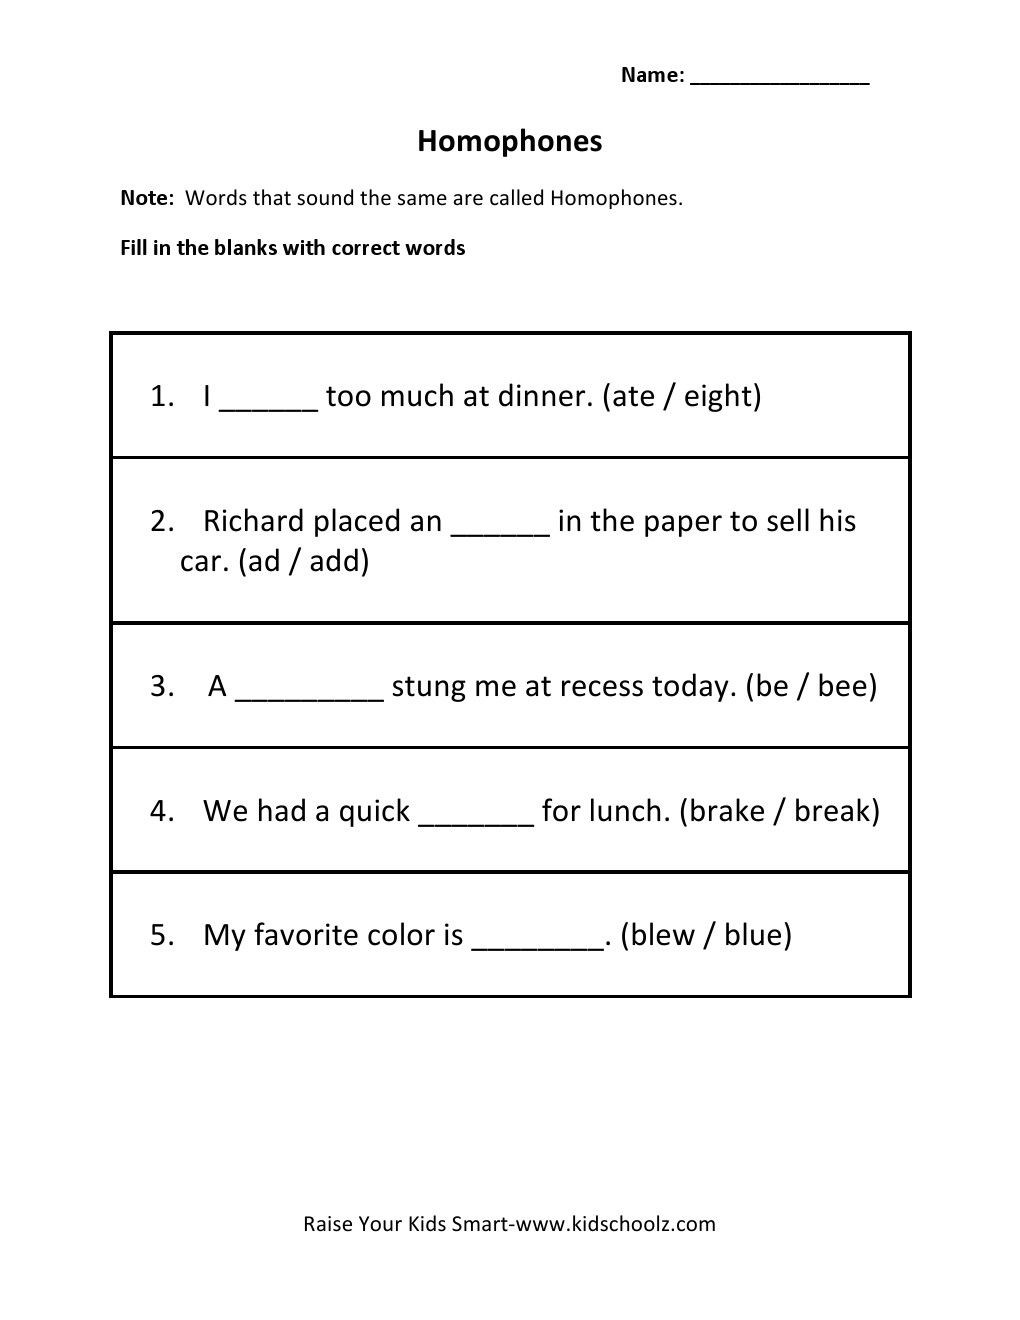 Homophones Worksheet High School Wp Content 2014 09 Homophones 1